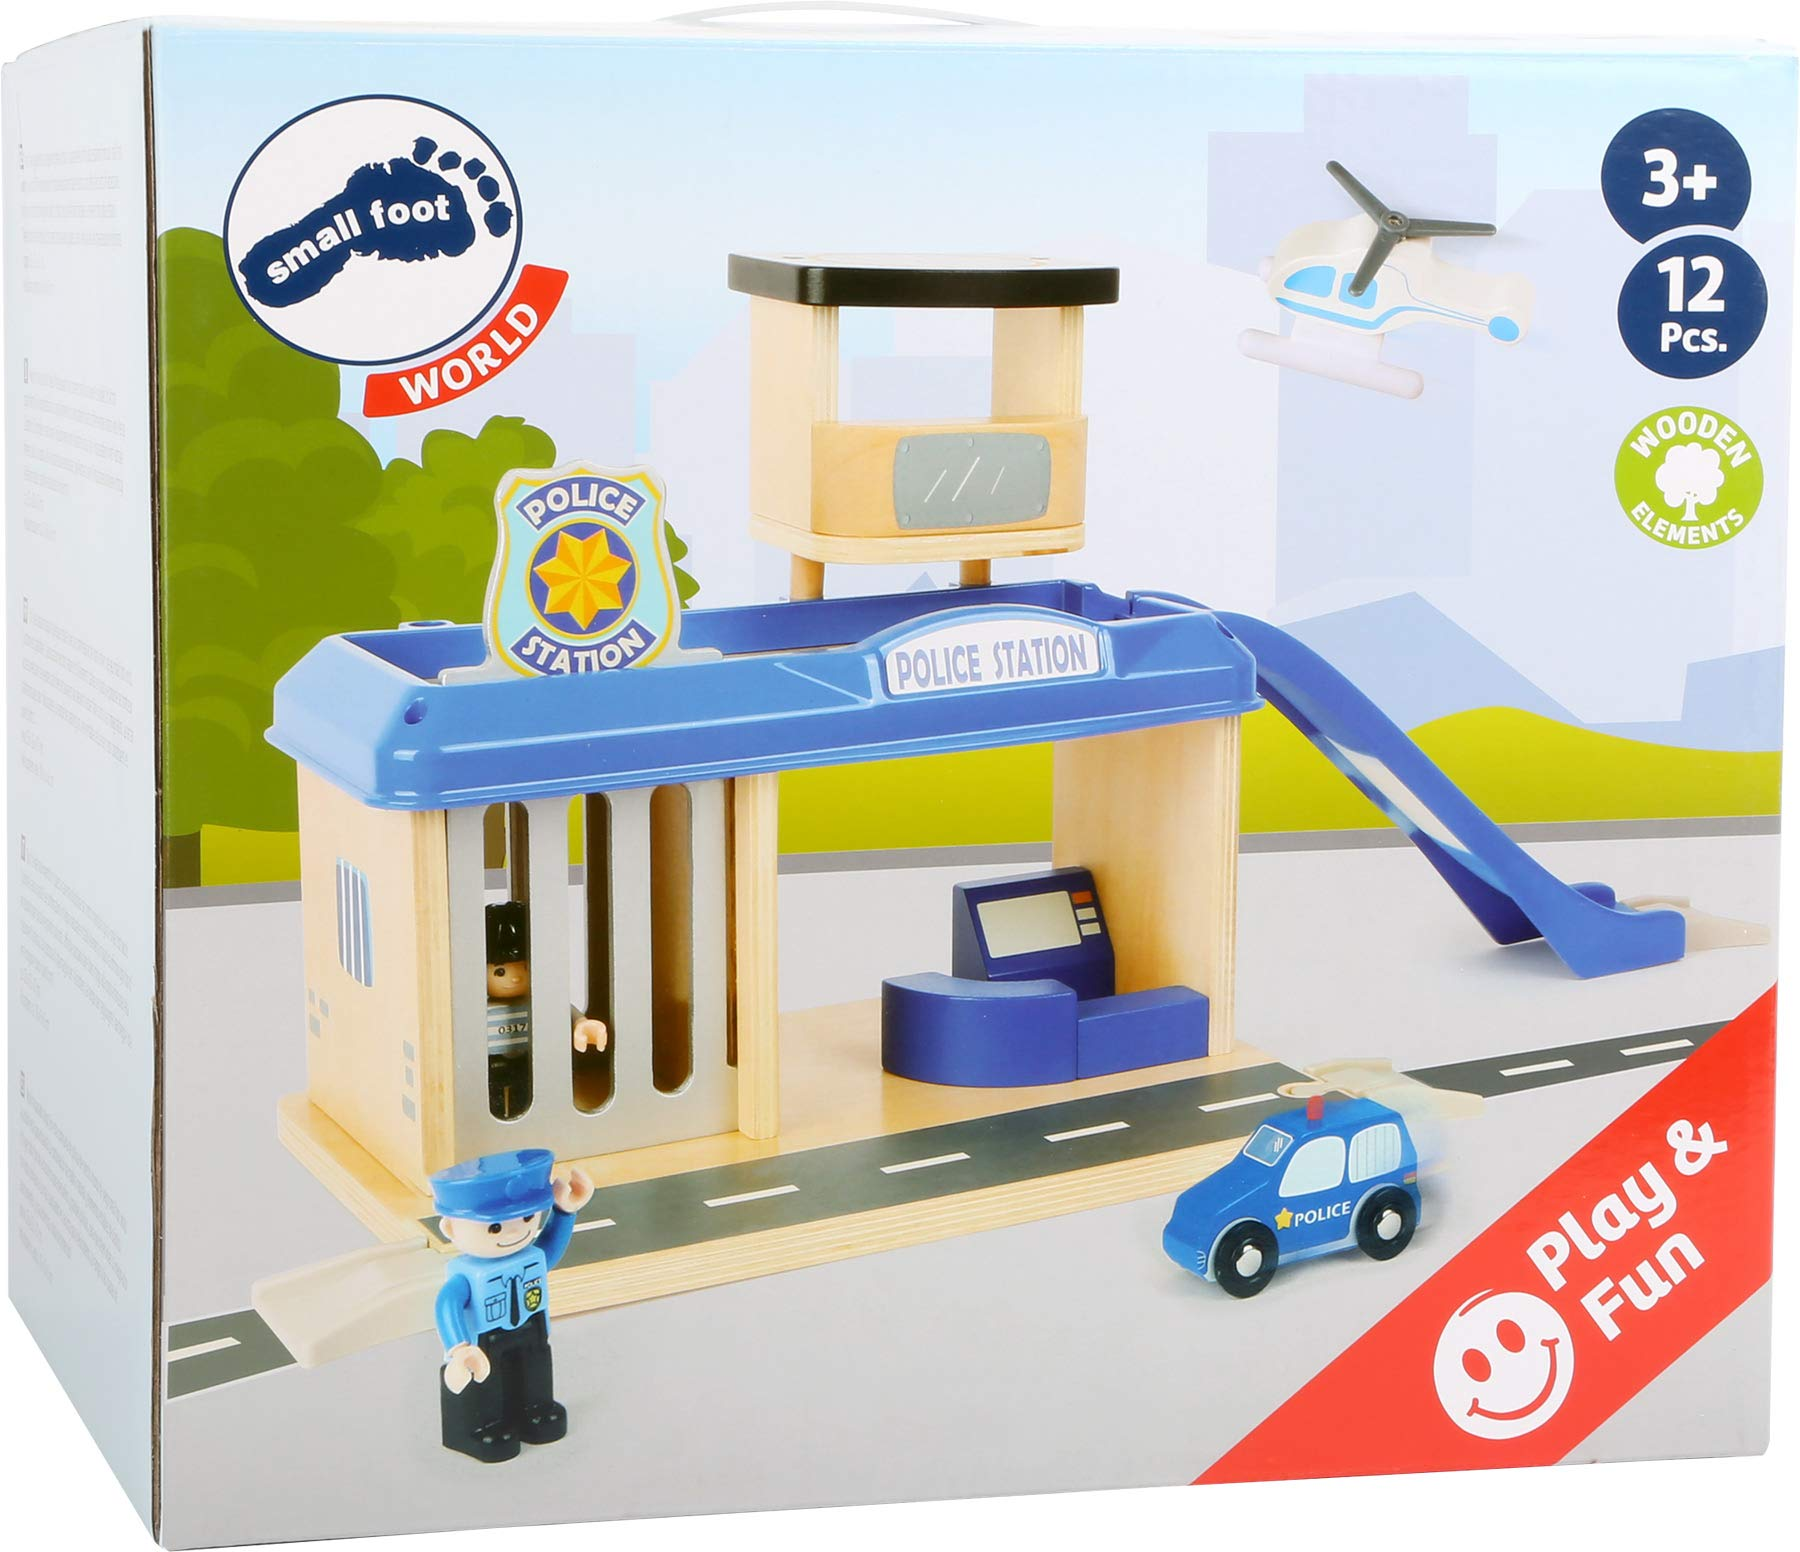 small foot 10797 Police station with accessories, including a policeman, robber, helicopter and car, from 3 years Small Foot World An impressive police station in a strong, vivid police blue Many extras like a policeman, a robber, a car and a helicopter Compatible with all common railway brands 8